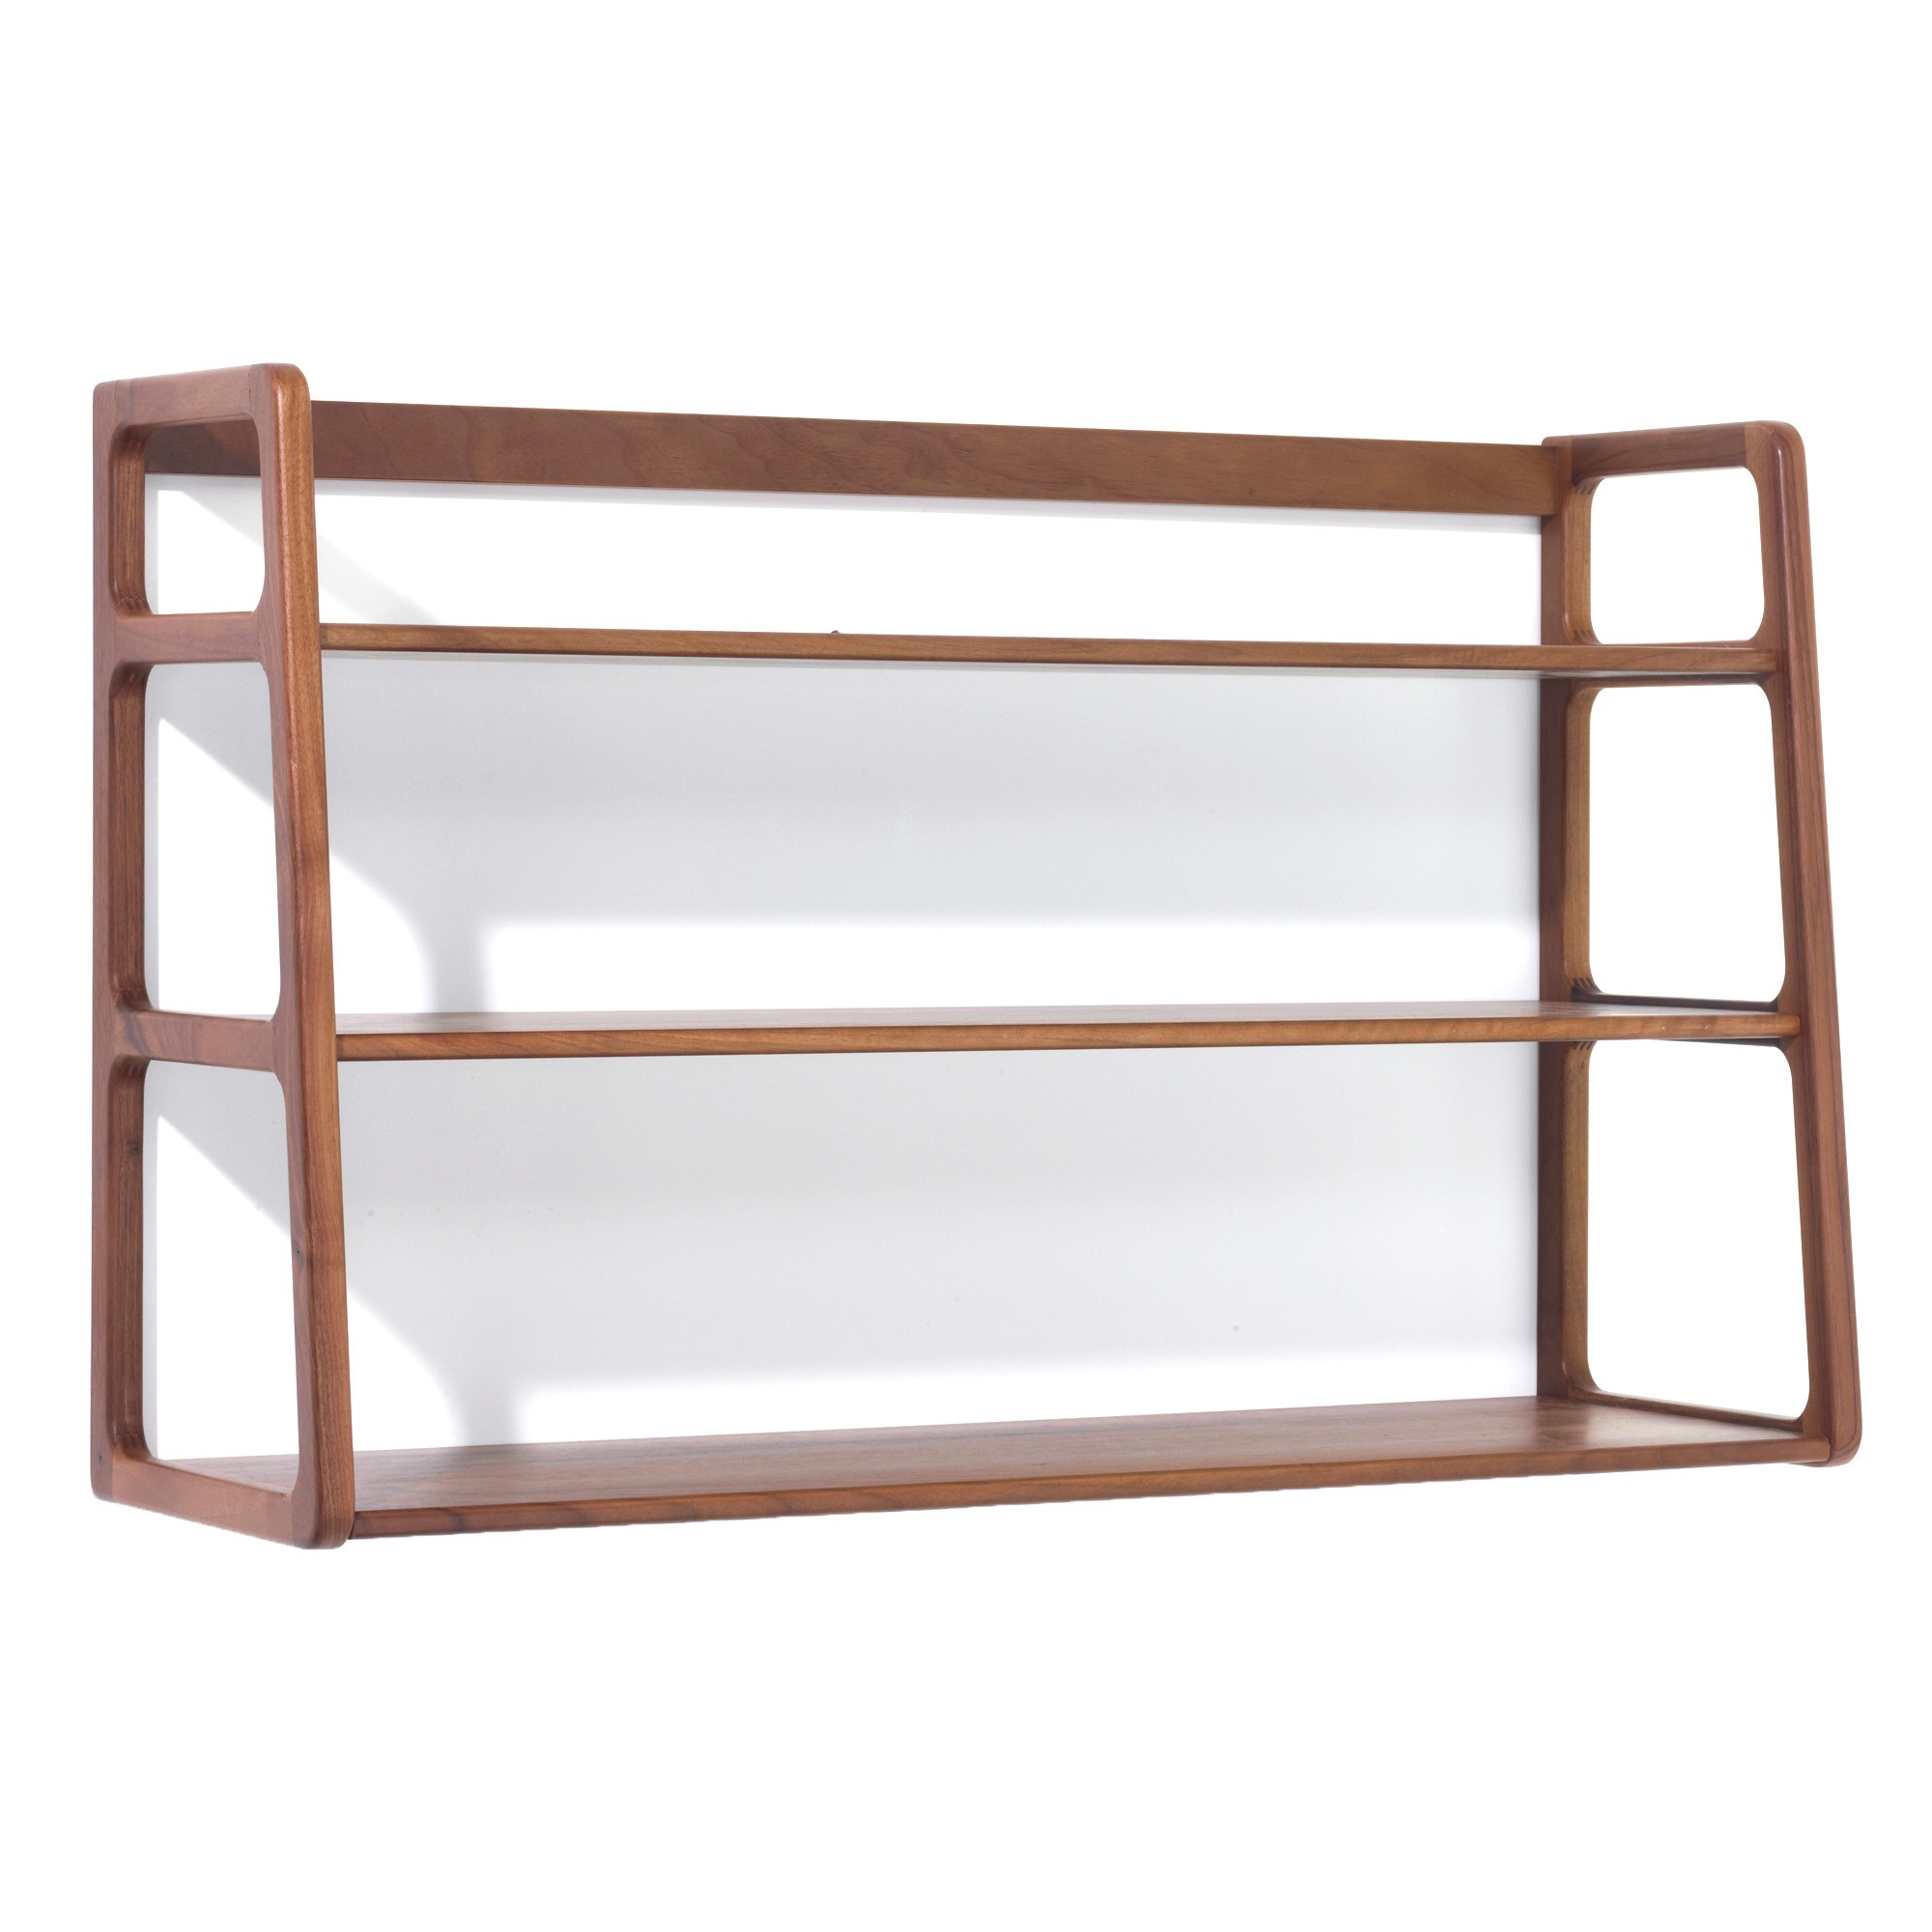 Tablette Murale Arrondie Etagere Murale Arrondie Shellf Etagre Murale S With